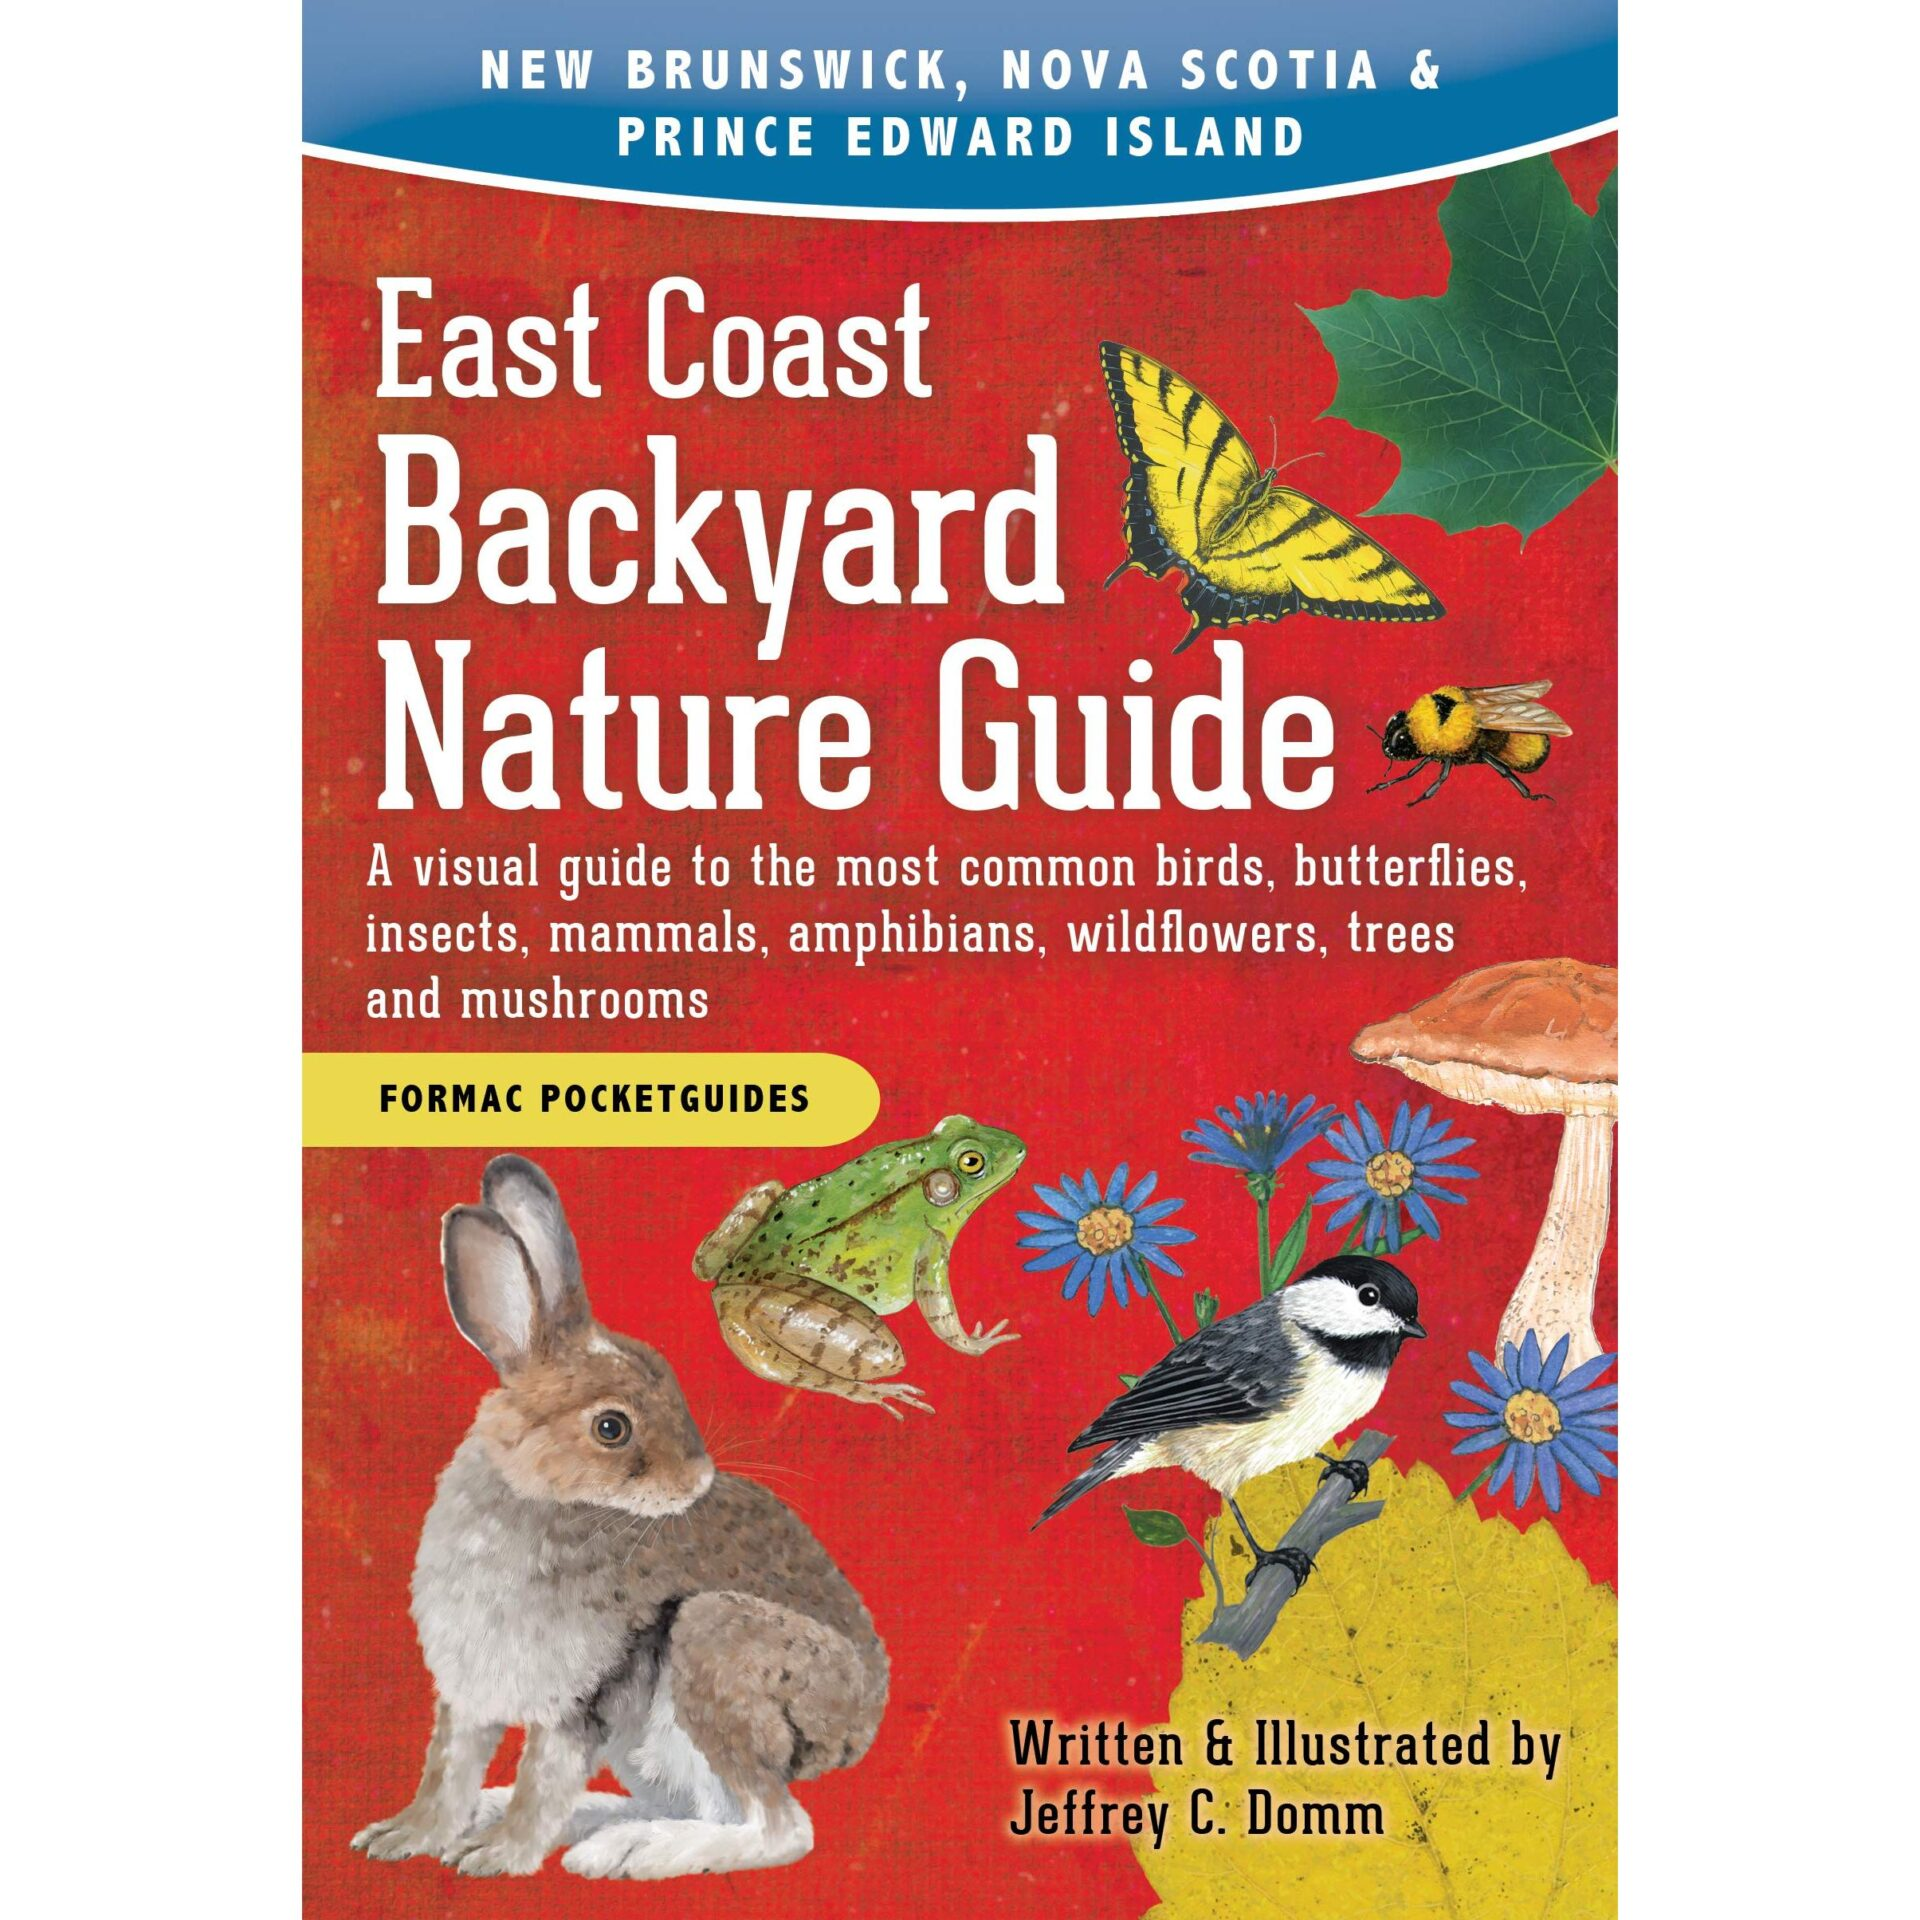 East Coast Backyard Nature Guide: A visual guide to the most common birds, butterflies, insects, mammals, amphibians, wildflowers, trees and mushrooms